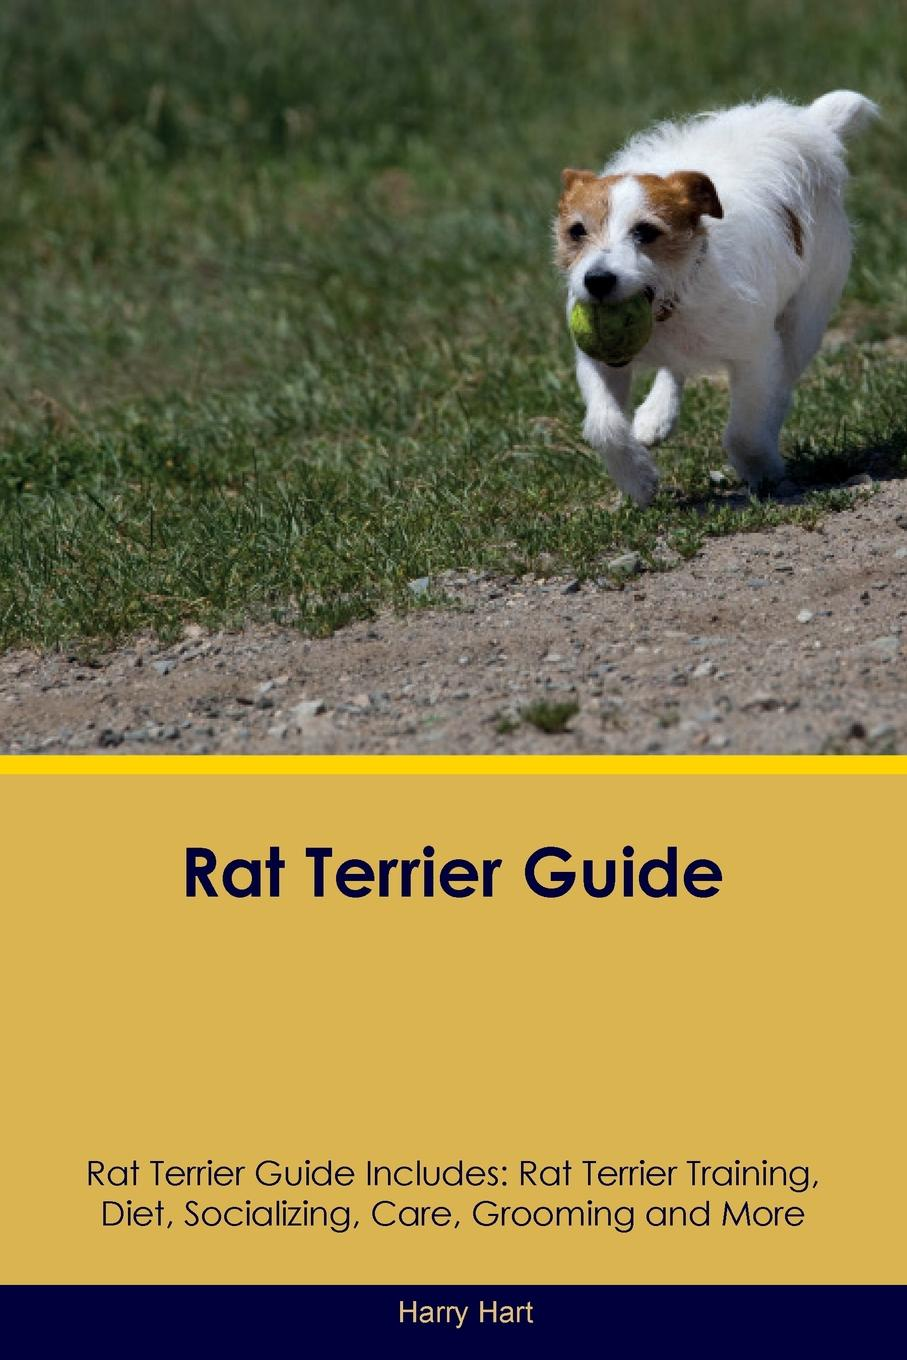 Rat Terrier Guide Rat Terrier Guide Includes. Rat Terrier Training, Diet, Socializing, Care, Grooming, Breeding and More